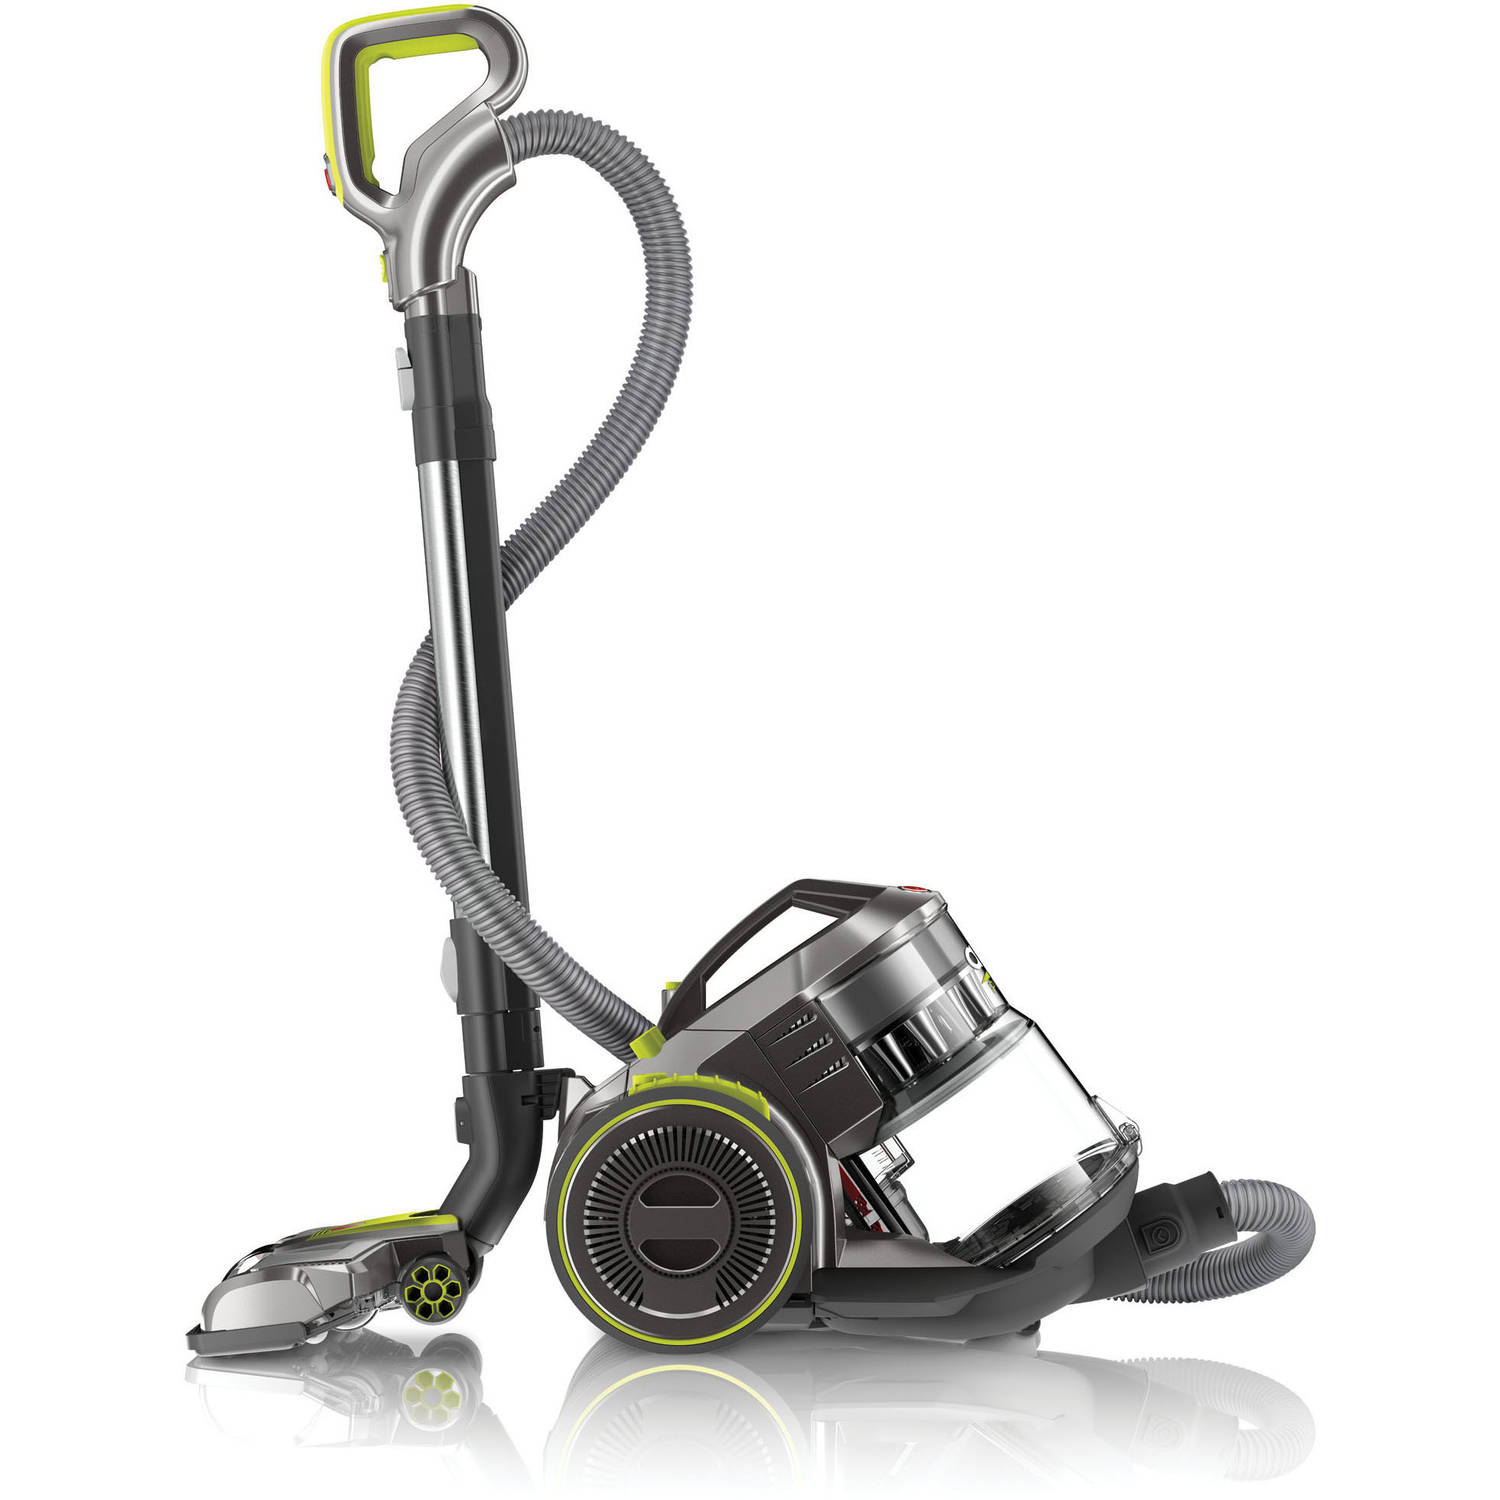 Hoover Air Pro Bagless Canister Vacuum, SH40075